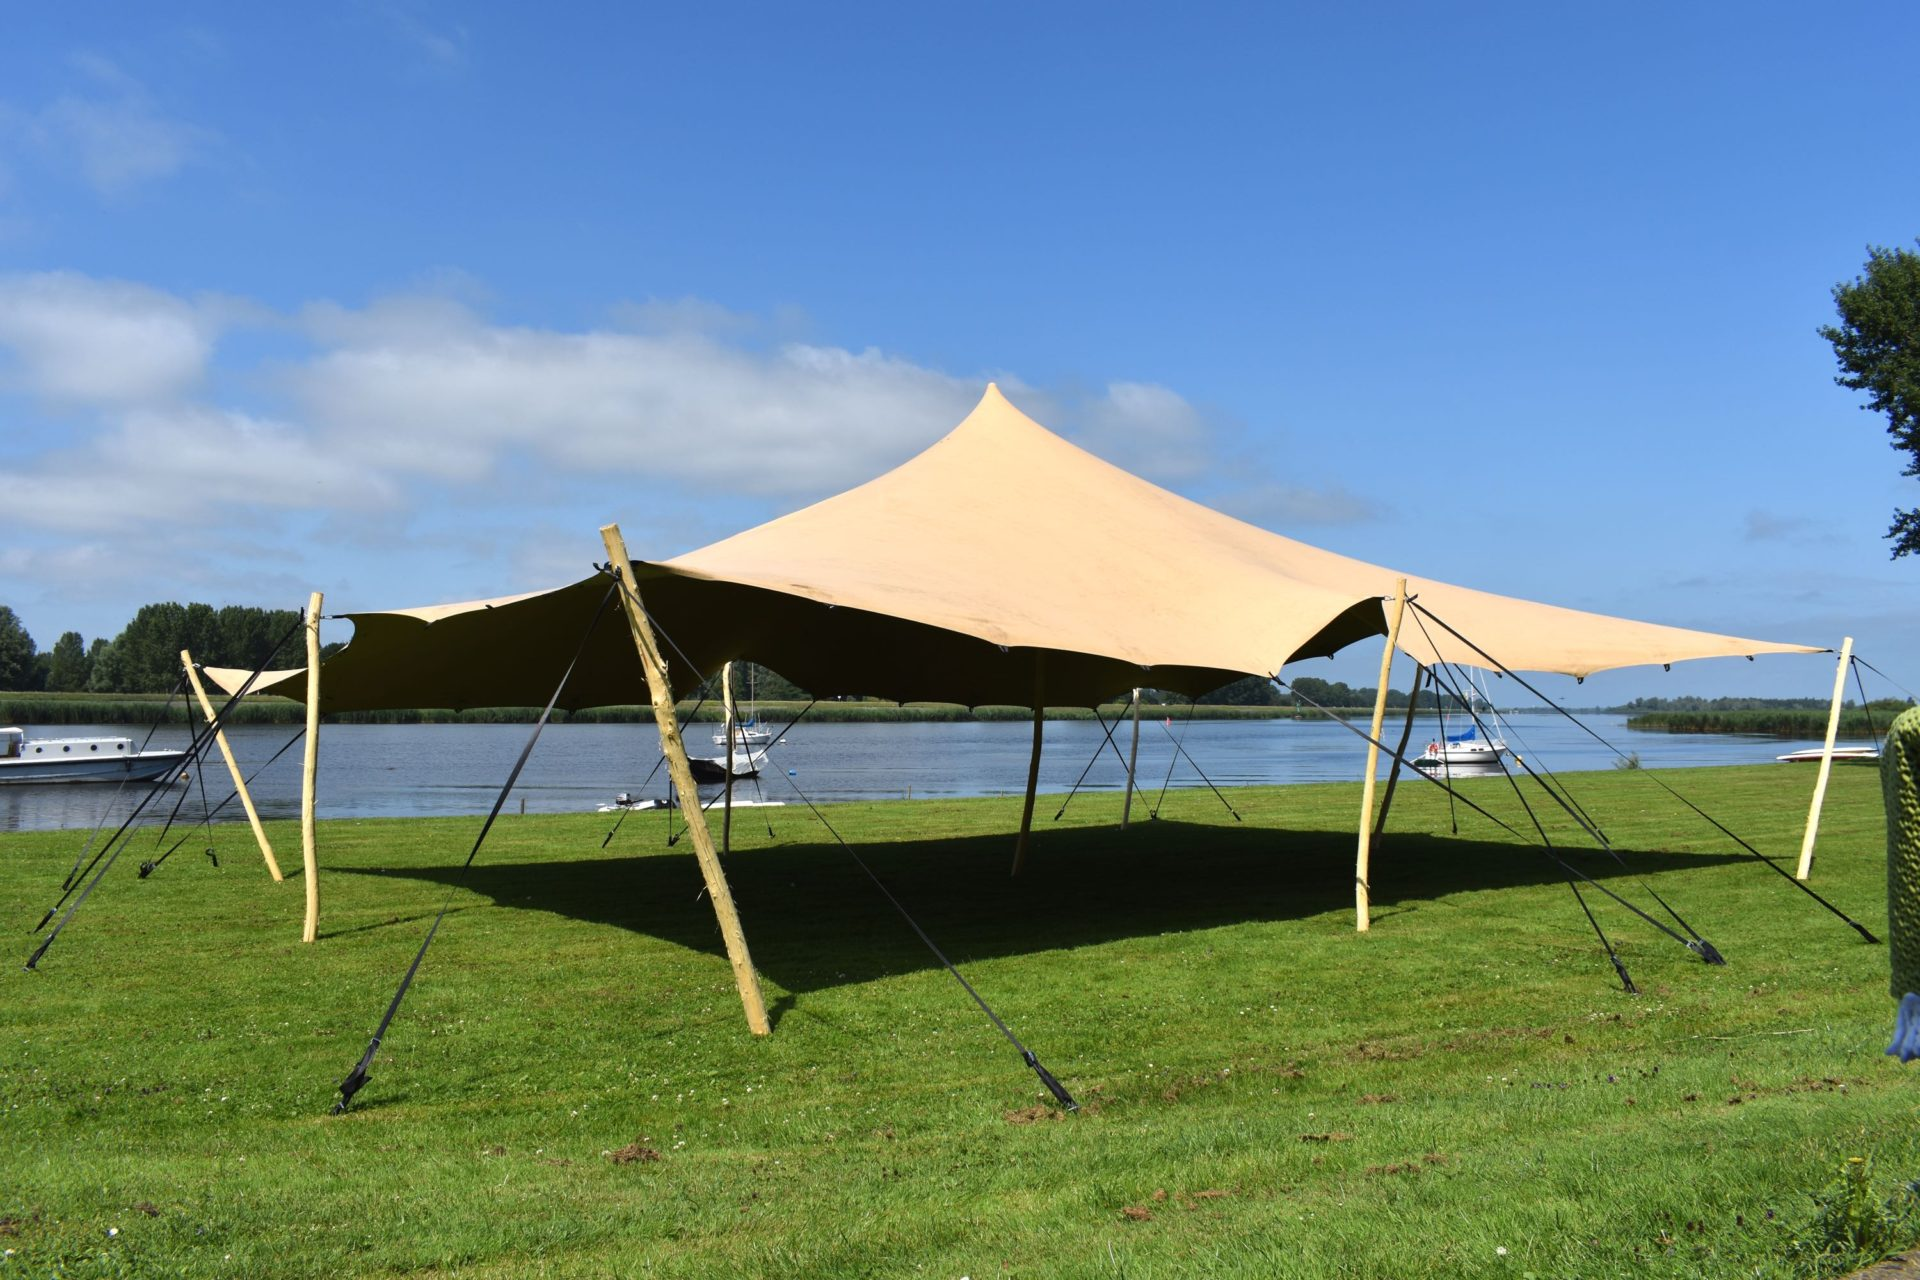 Stretchtent 15 x 20 meter Premiumstretch| lus verbinding